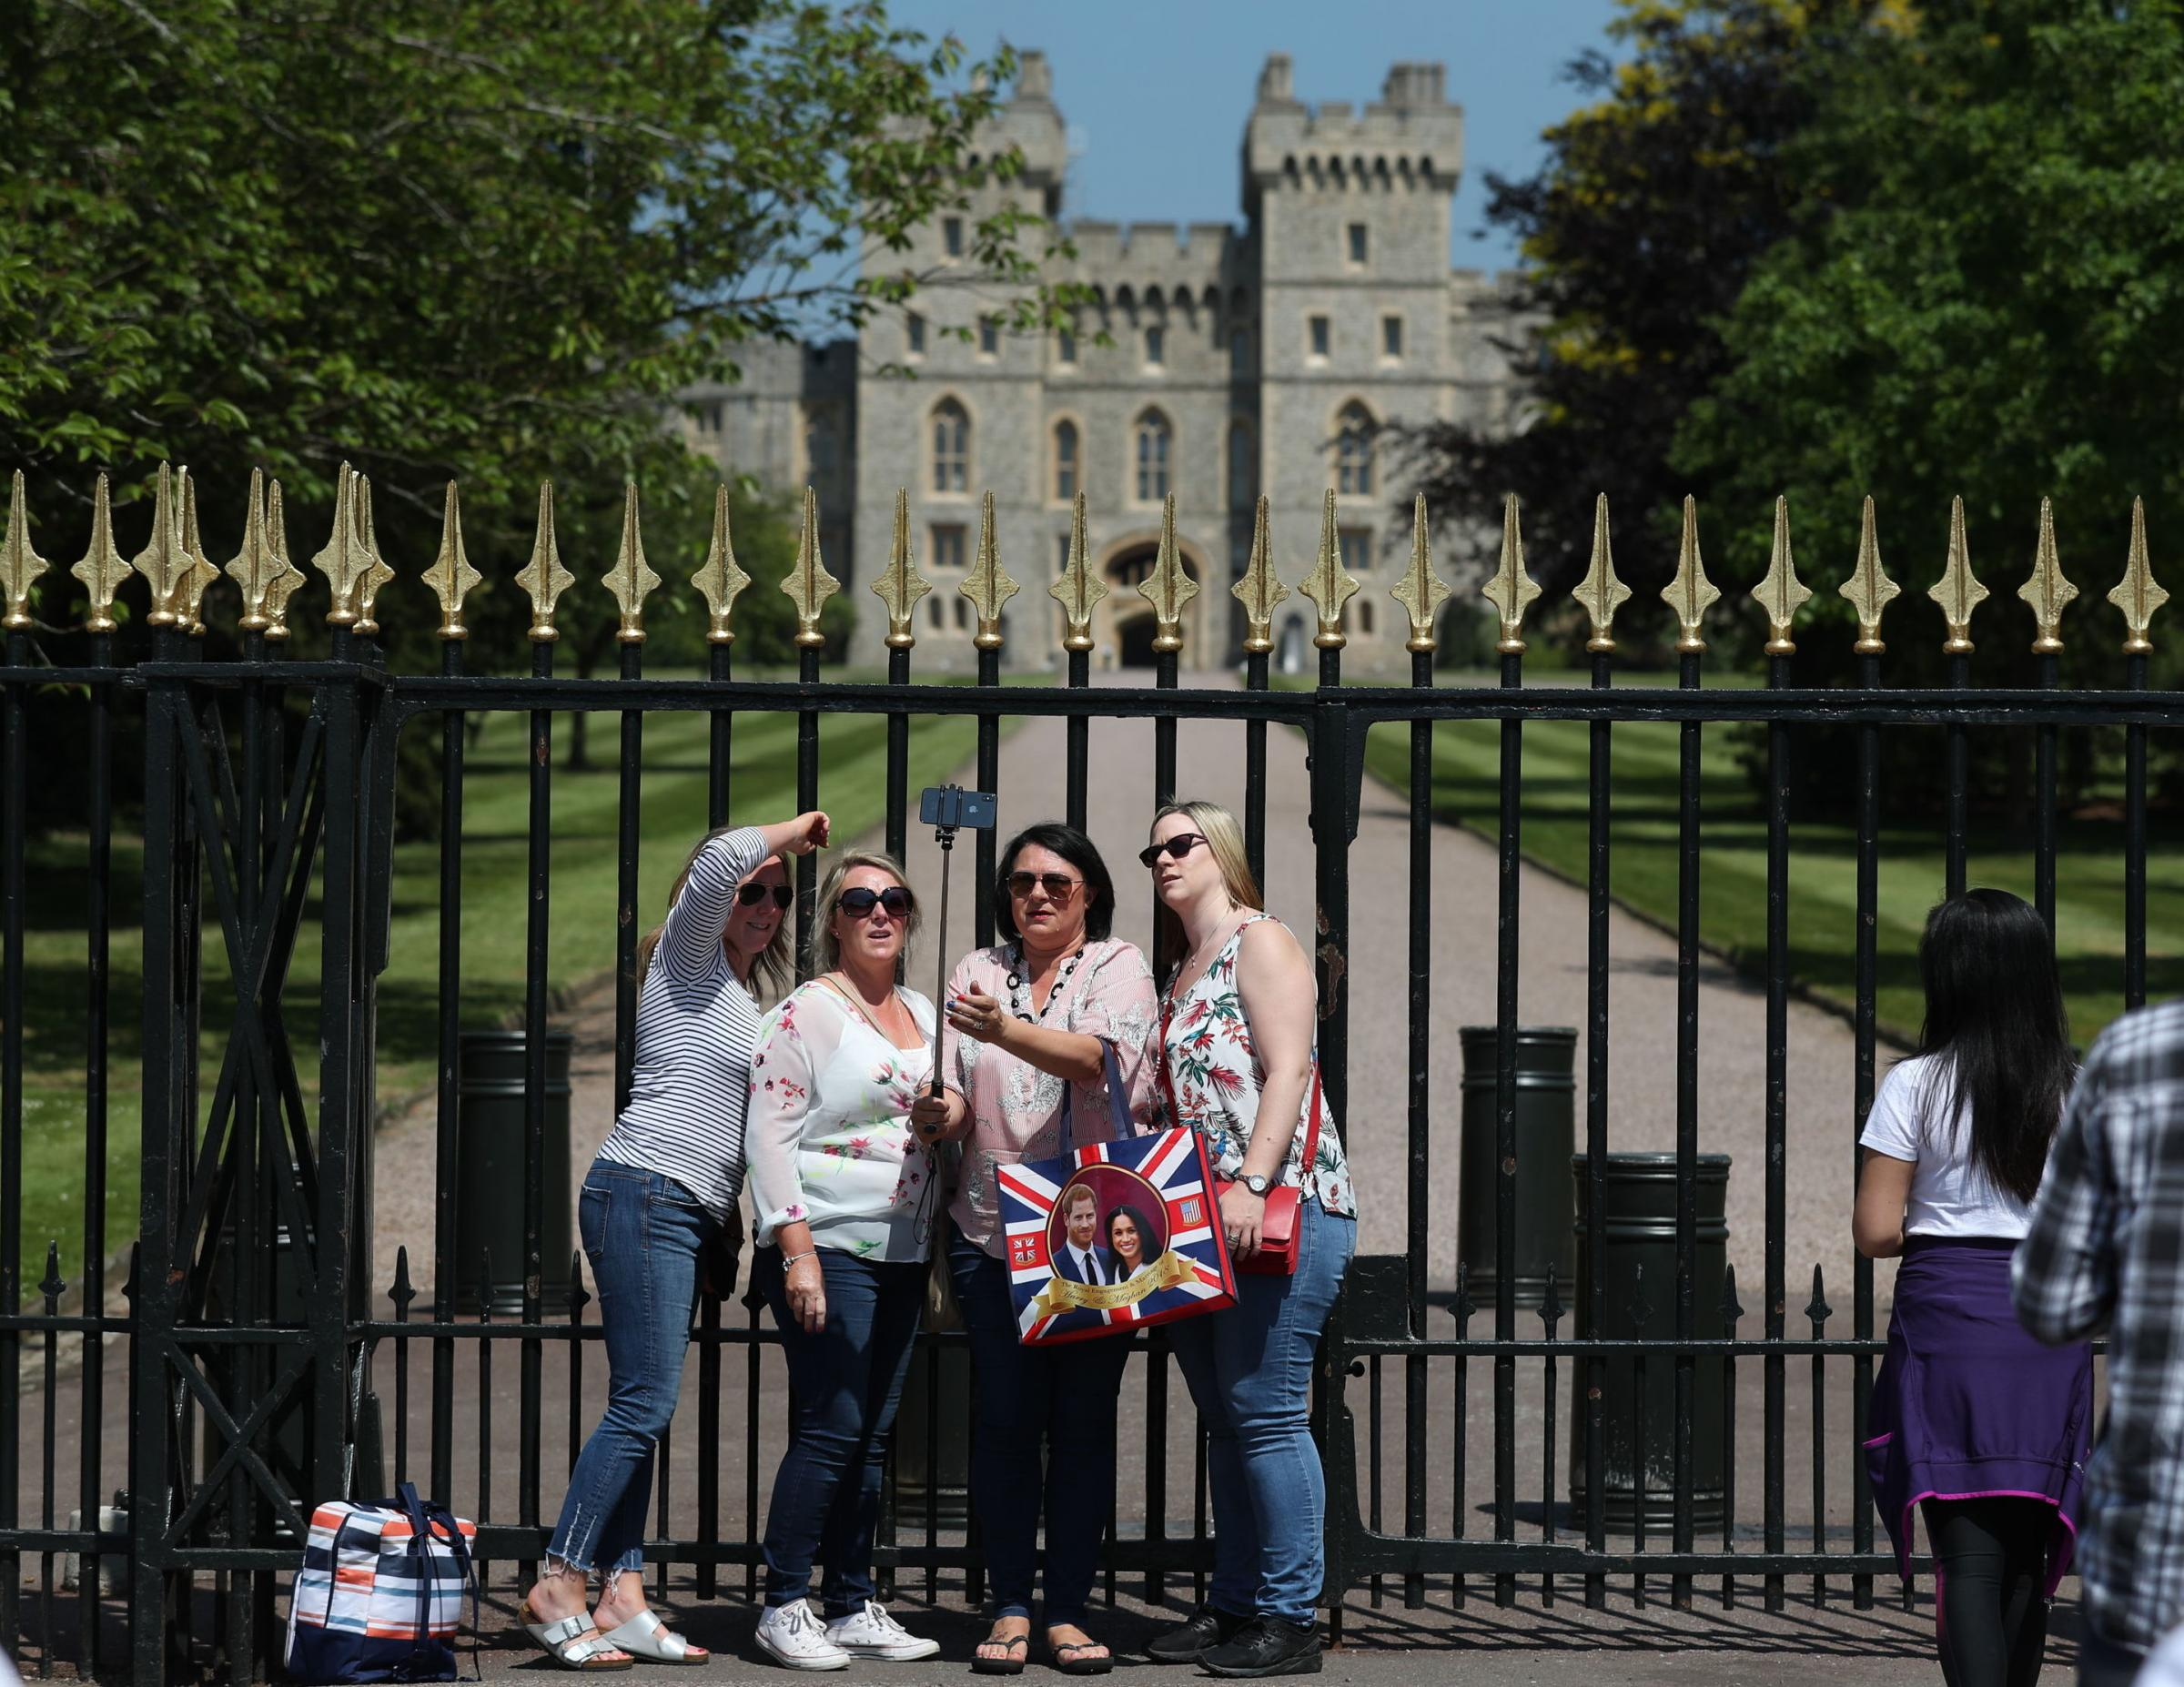 Royal fans pose for a selfie at the gates of Windsor Castle the day after the wedding of Prince Harry and Meghan Markle